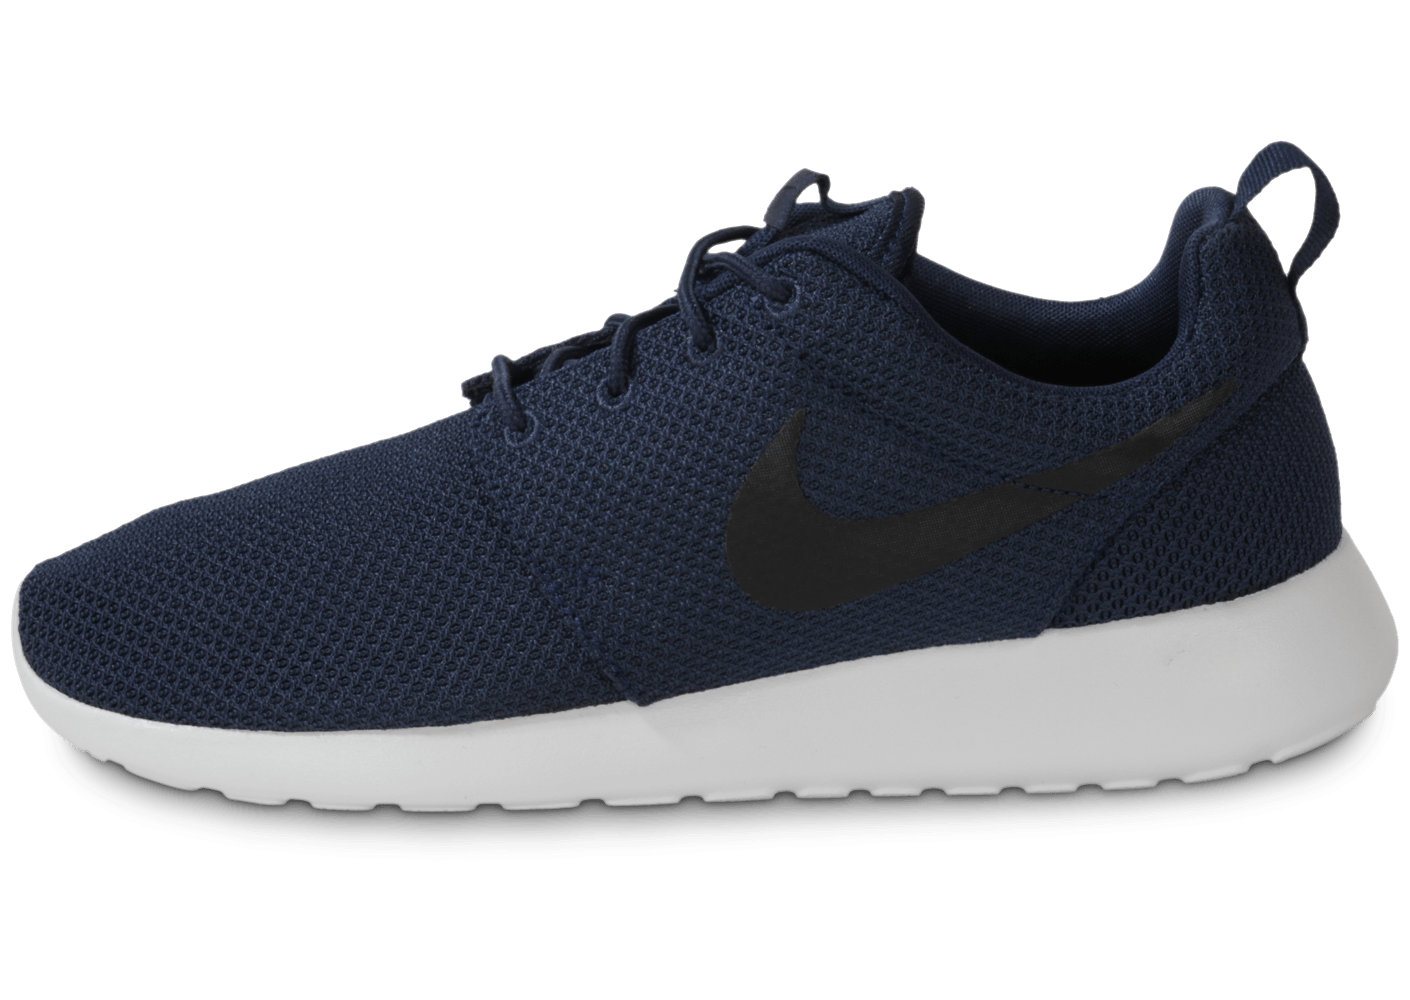 nike roshe run bleu marine chaussures homme chausport. Black Bedroom Furniture Sets. Home Design Ideas